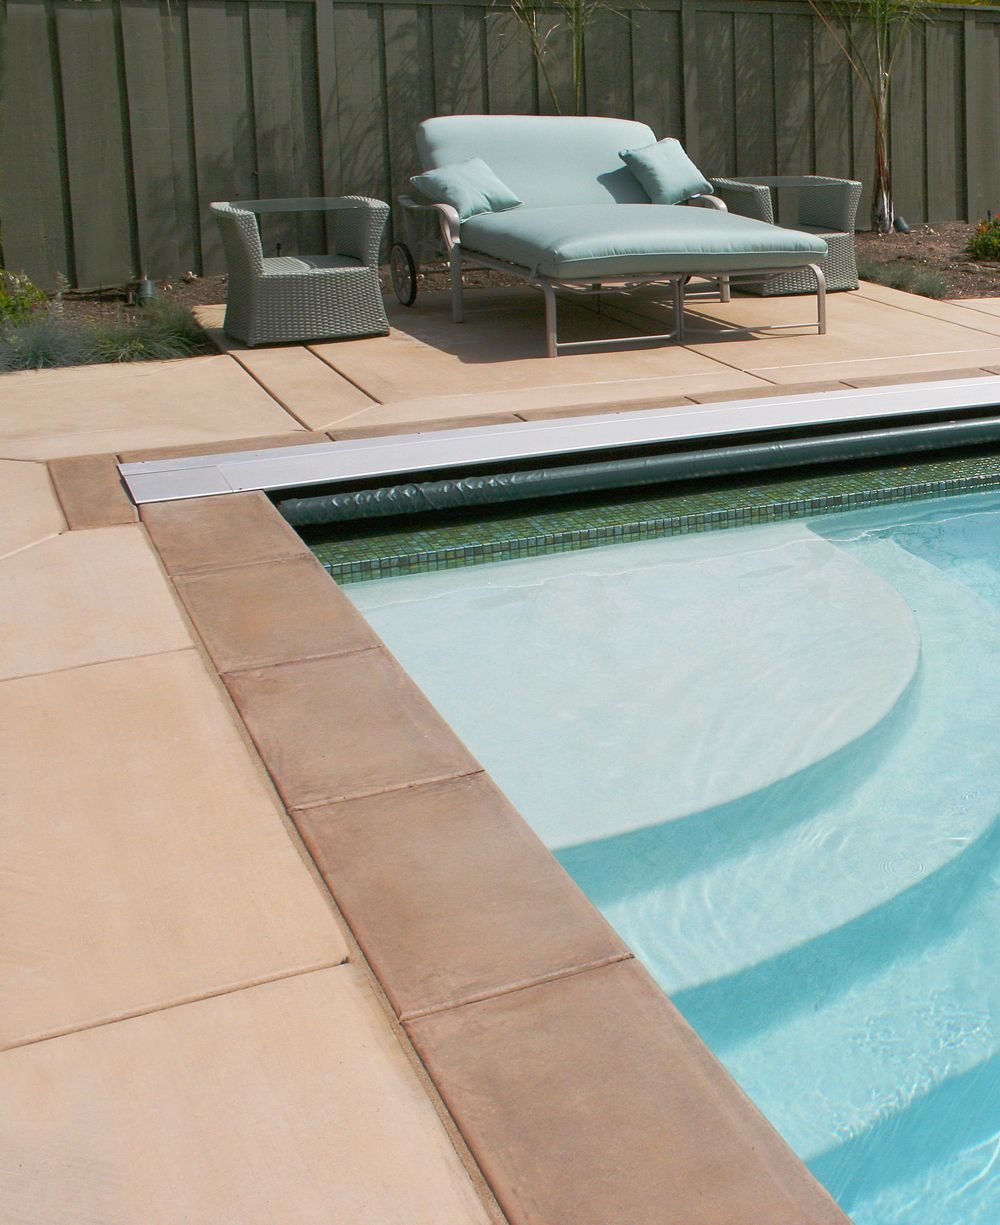 coverstar automatic pool covers. this coverstar pool cover is built into the design of so that it stays automatic covers n